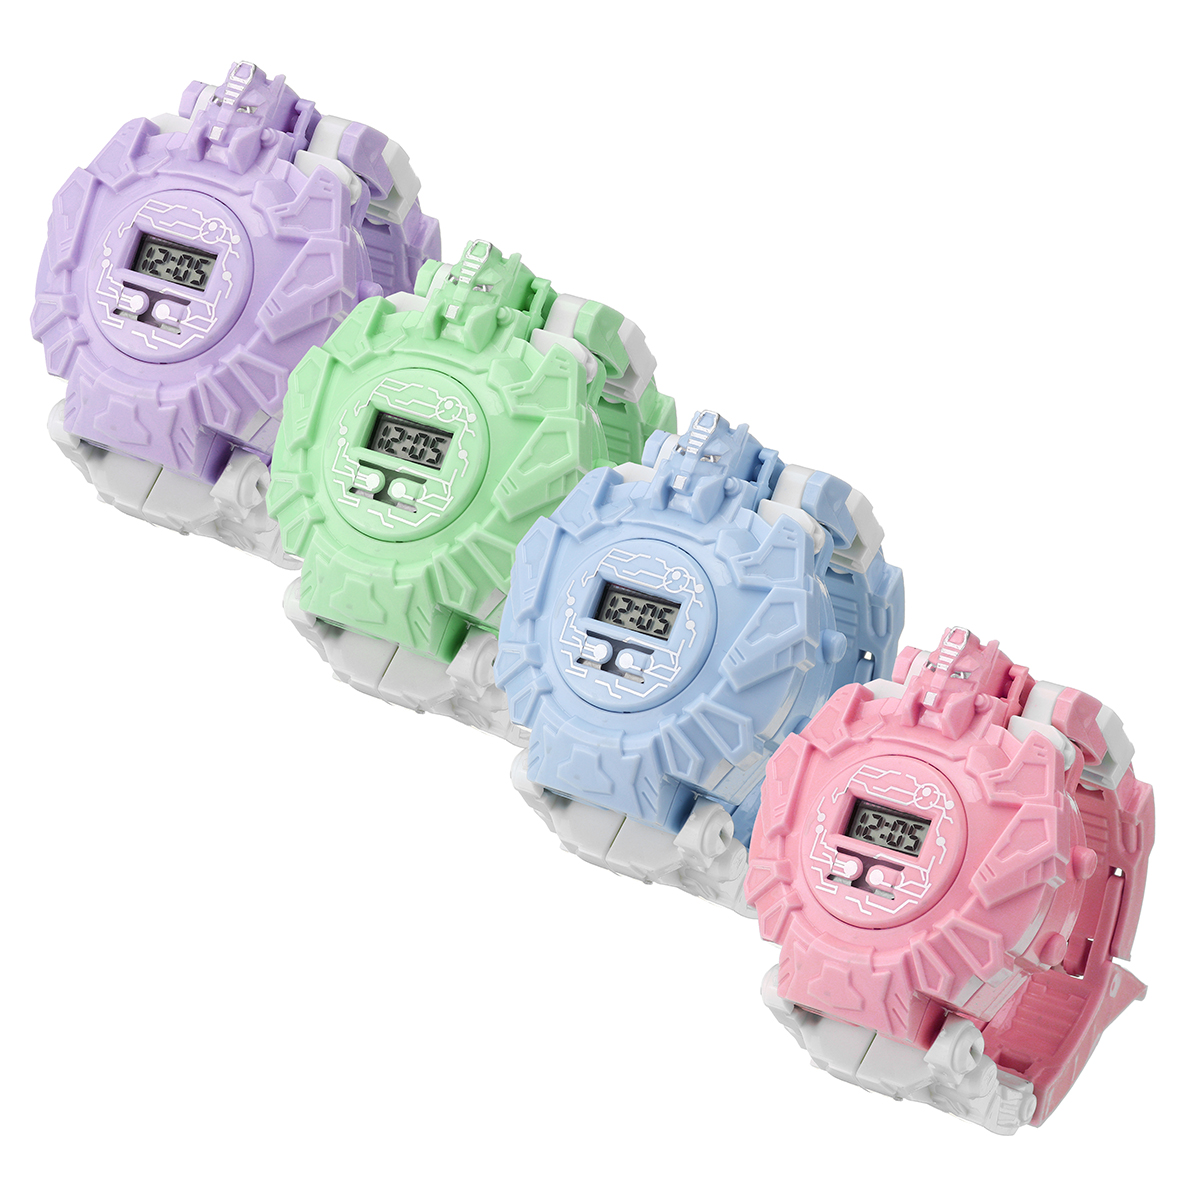 Children's Electronic Multi-color Deformation Novelties Watch Toys for Kids Gift - Photo: 3